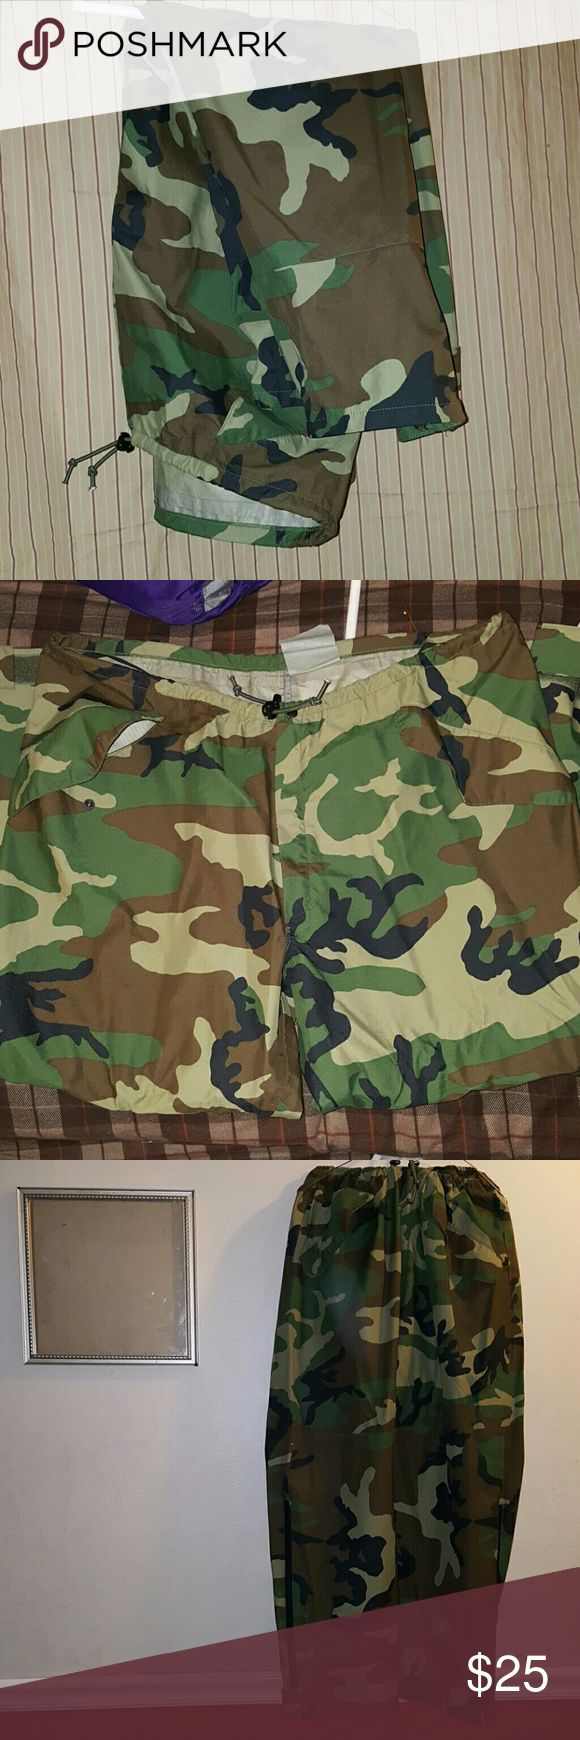 Men's Camo pants Good condition used once Pants